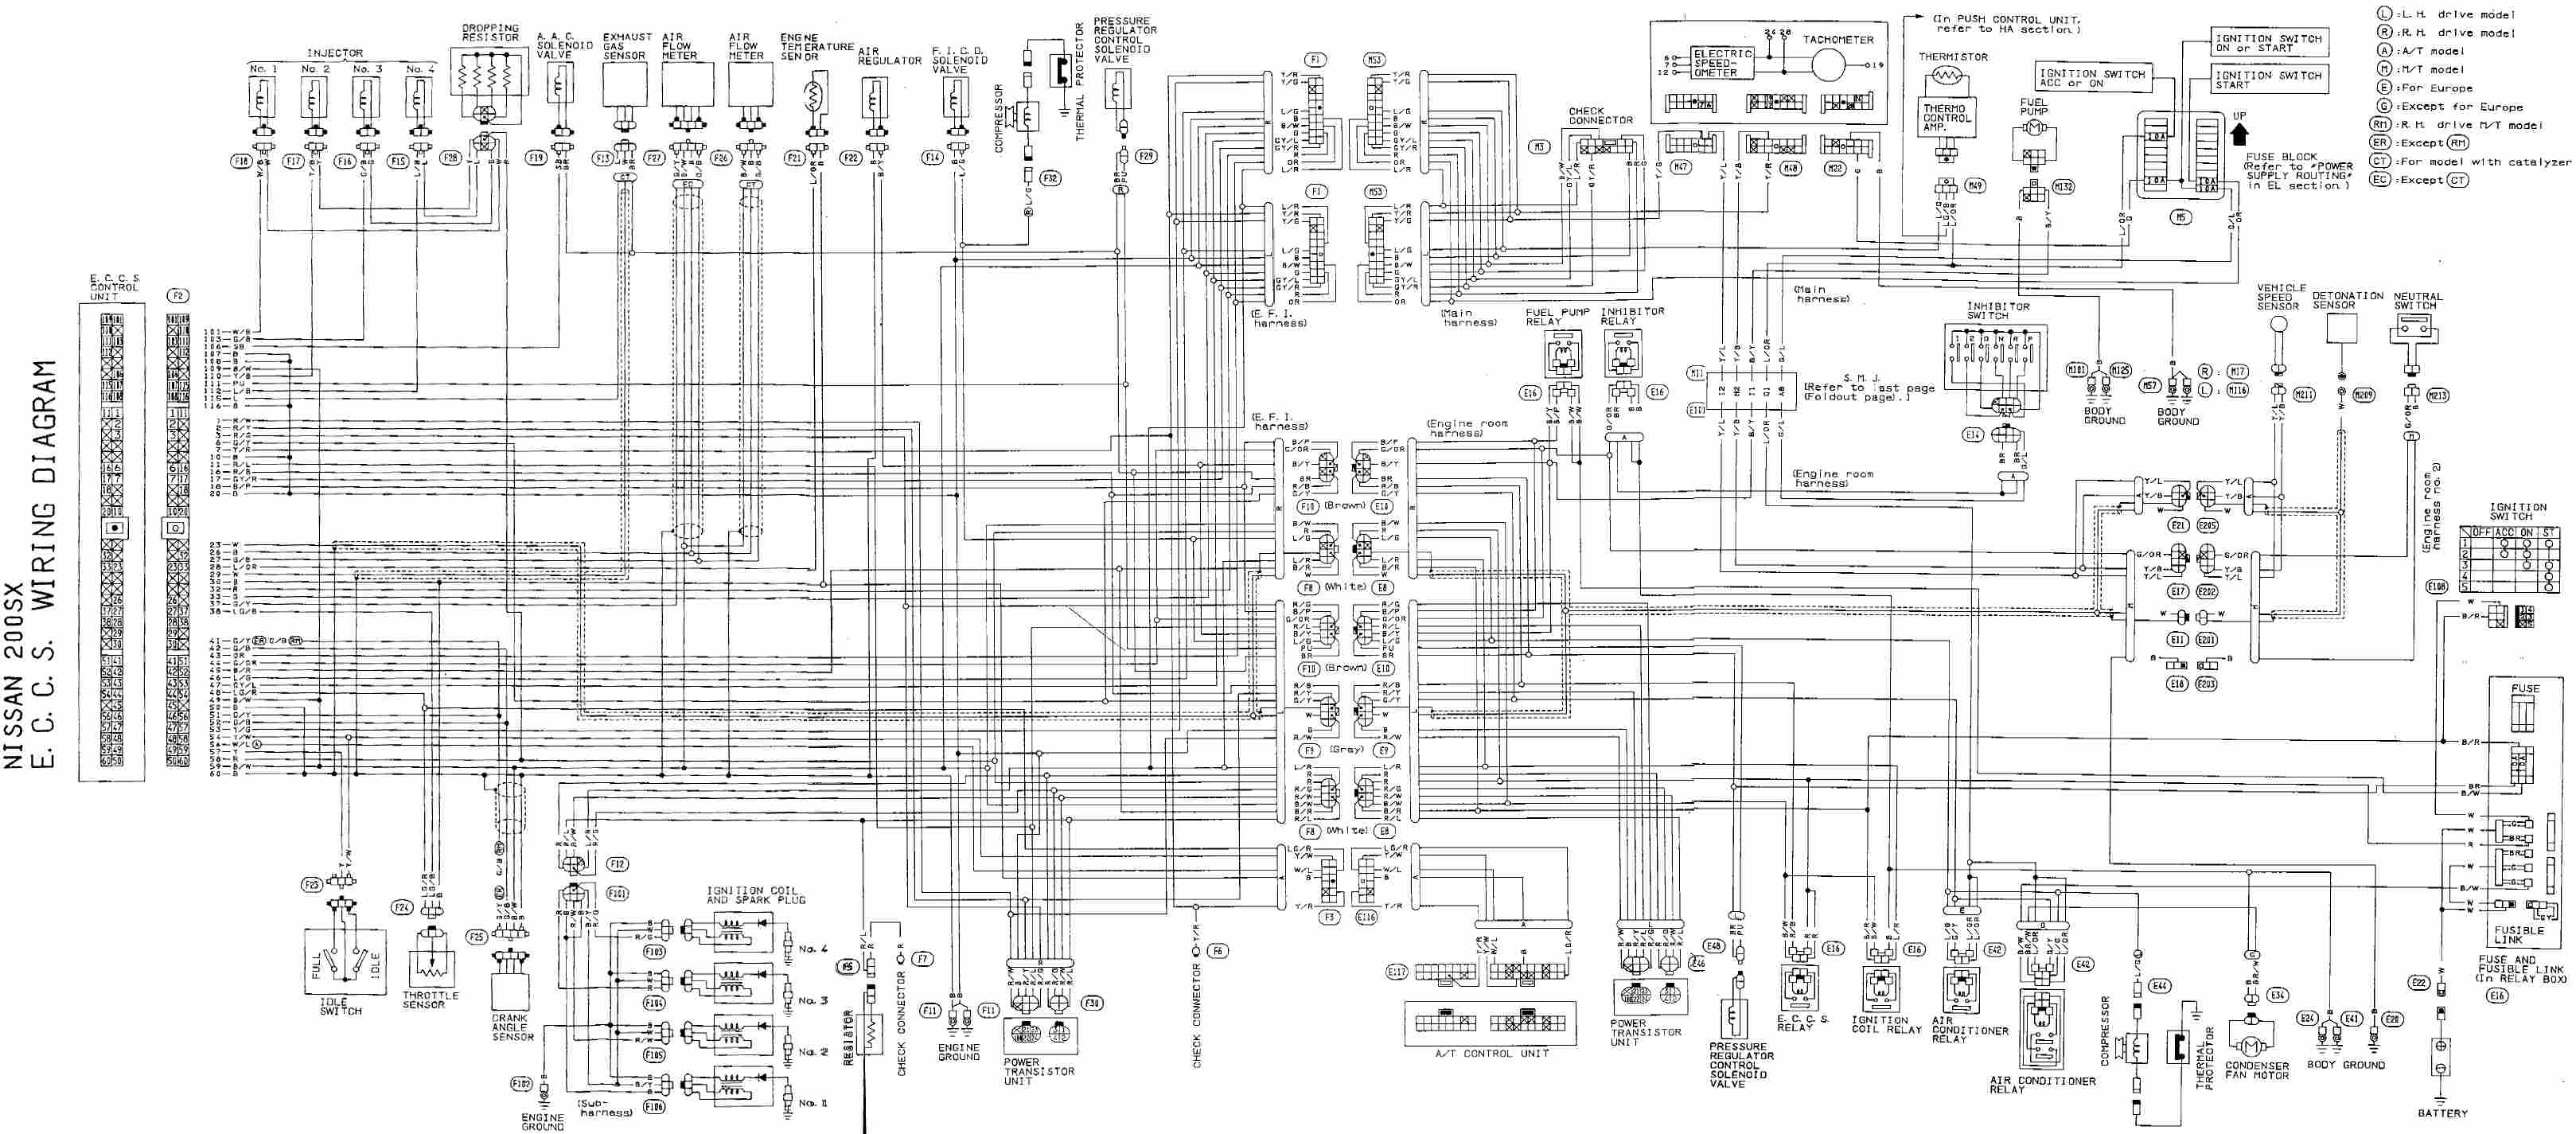 Nissan on subaru legacy wiring diagram